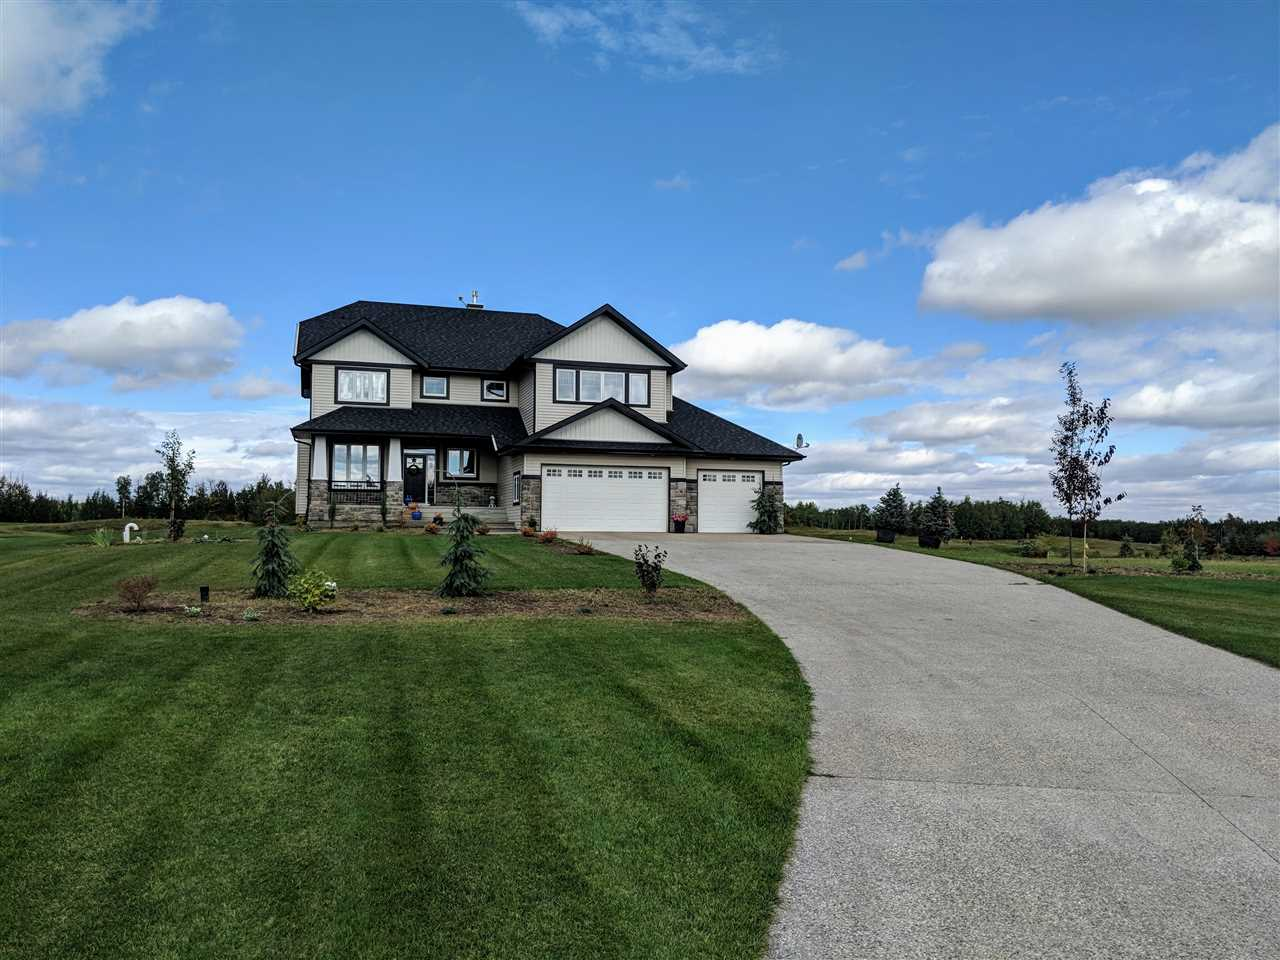 Minutes to Edmonton, this Kimberley custom home is located on a full acre backing Blackhawk golf course. With 3100 sqft, this is truly a custom and unique build. From the beautiful hardwood on the main floor and light from every direction, it makes this large home feel even bigger. The living room boasts double sided fireplace the full height of the 20 foot vaulted ceilings, huge separate dining area and a kitchen to die for. This gourmet kitchen features granite counters, custom hood fan, all GE Monogram appliances featuring a 48? gas stove and walkthrough pantry. Upstairs you will find 3 generous bedrooms and bonus room. The master retreat has private balcony overlooking the golf course, gas fireplace, and ensuite with large soaker tub, tiled shower with multiple shower heads and his and hers sinks. Throughout the house is a $15,000 audio system that works off your phone. With a Walkout basement and huge triple garage, what more could you want?